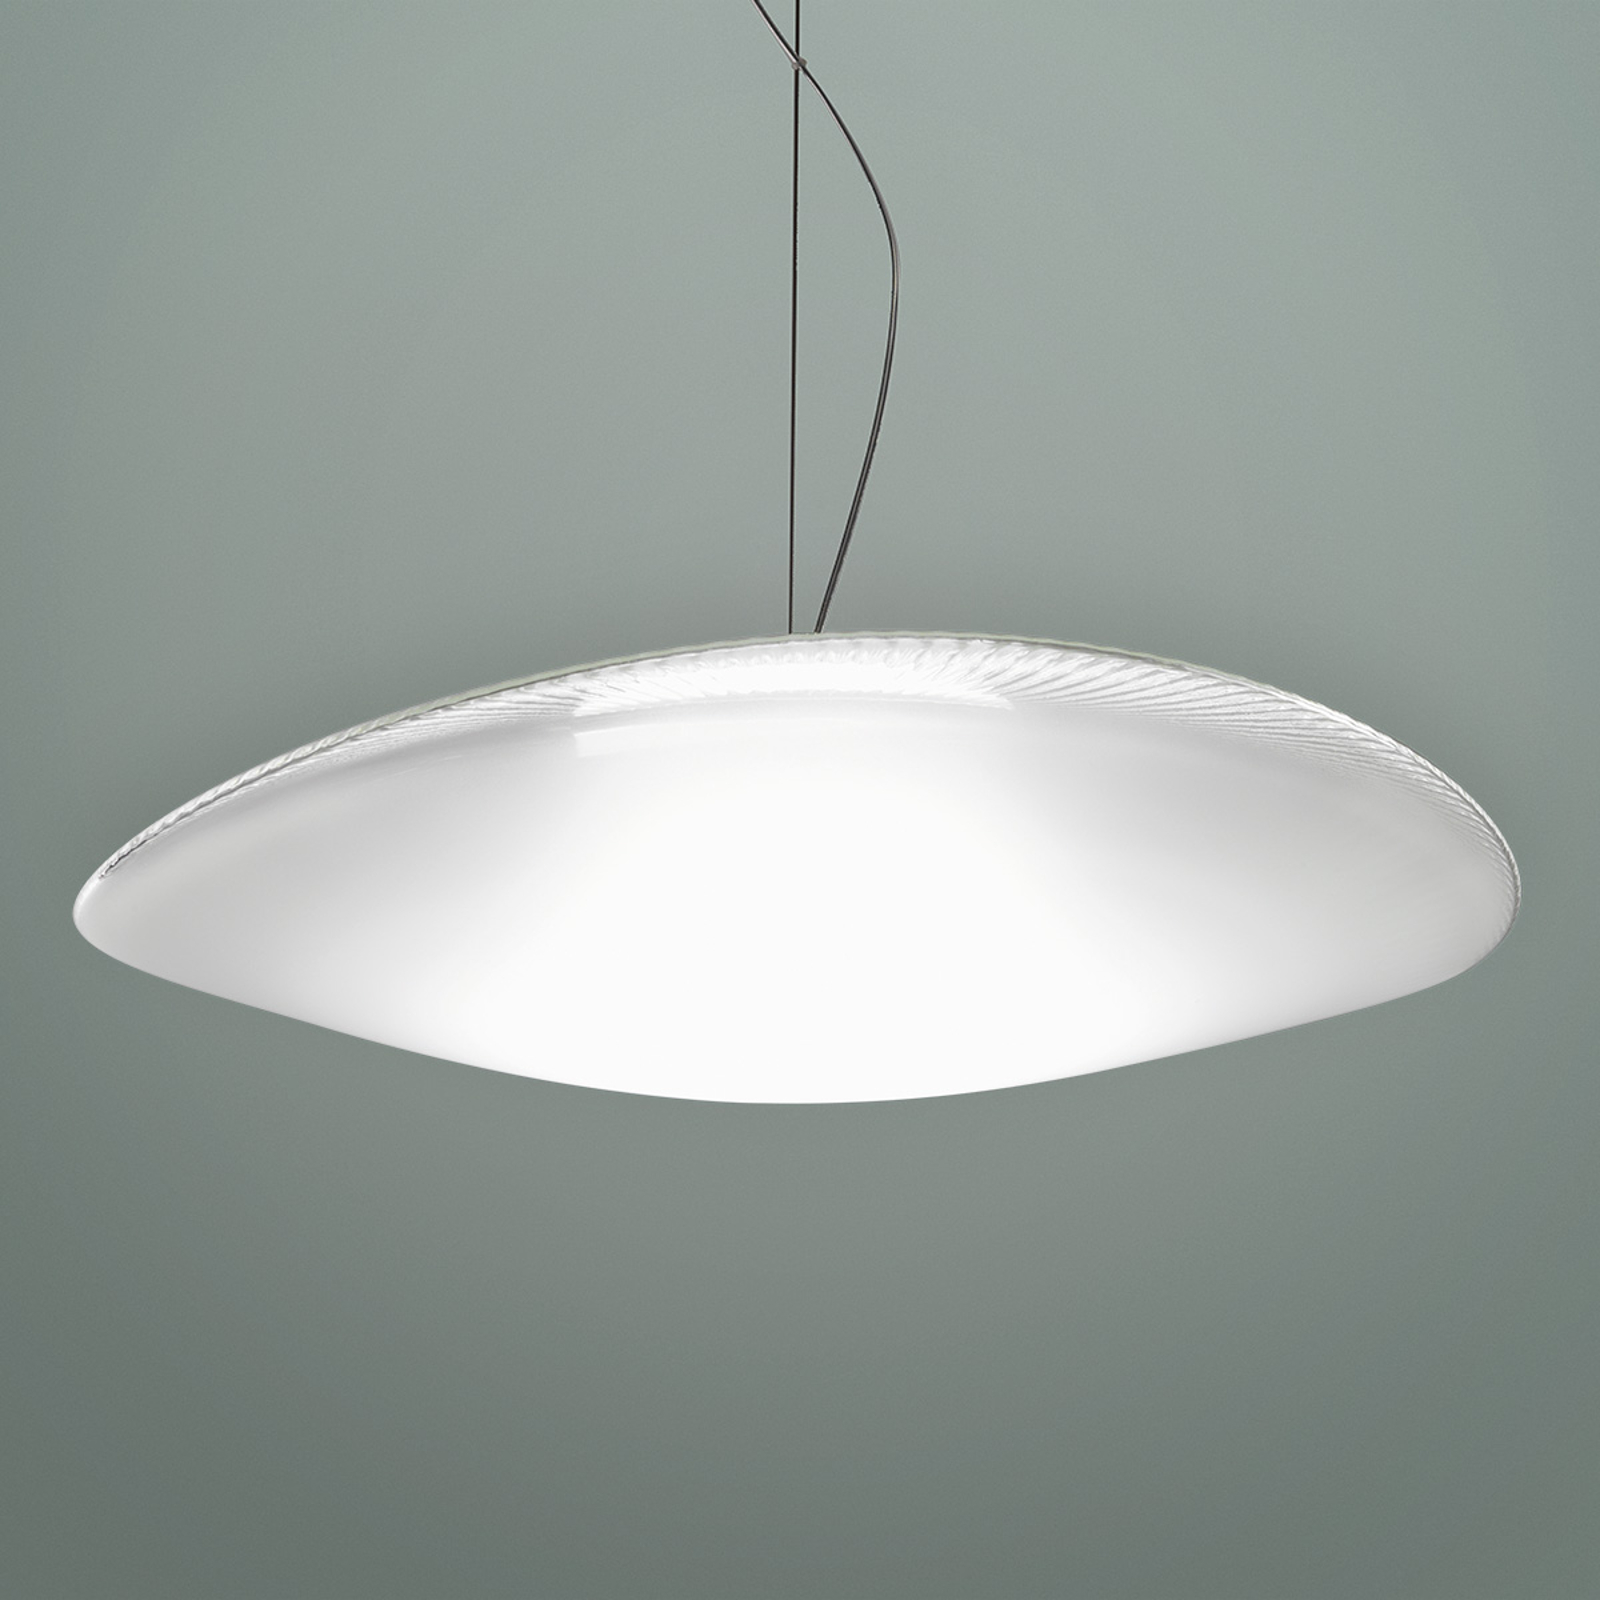 Powerful Loop glass hanging light with LED, 3000K_3503223_1